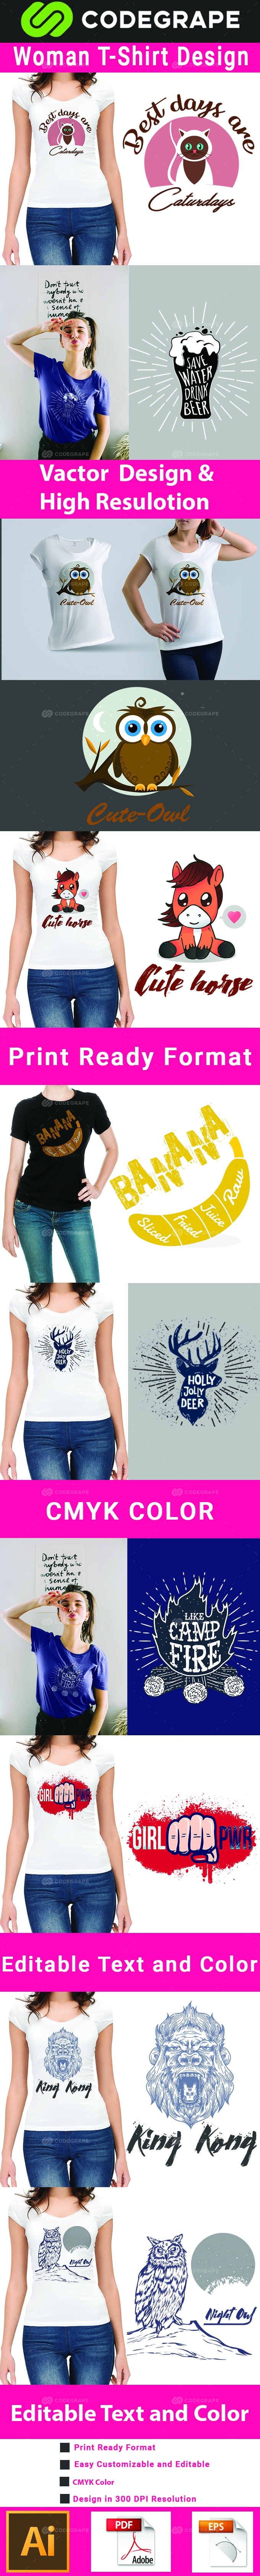 Woman T-shirt Design